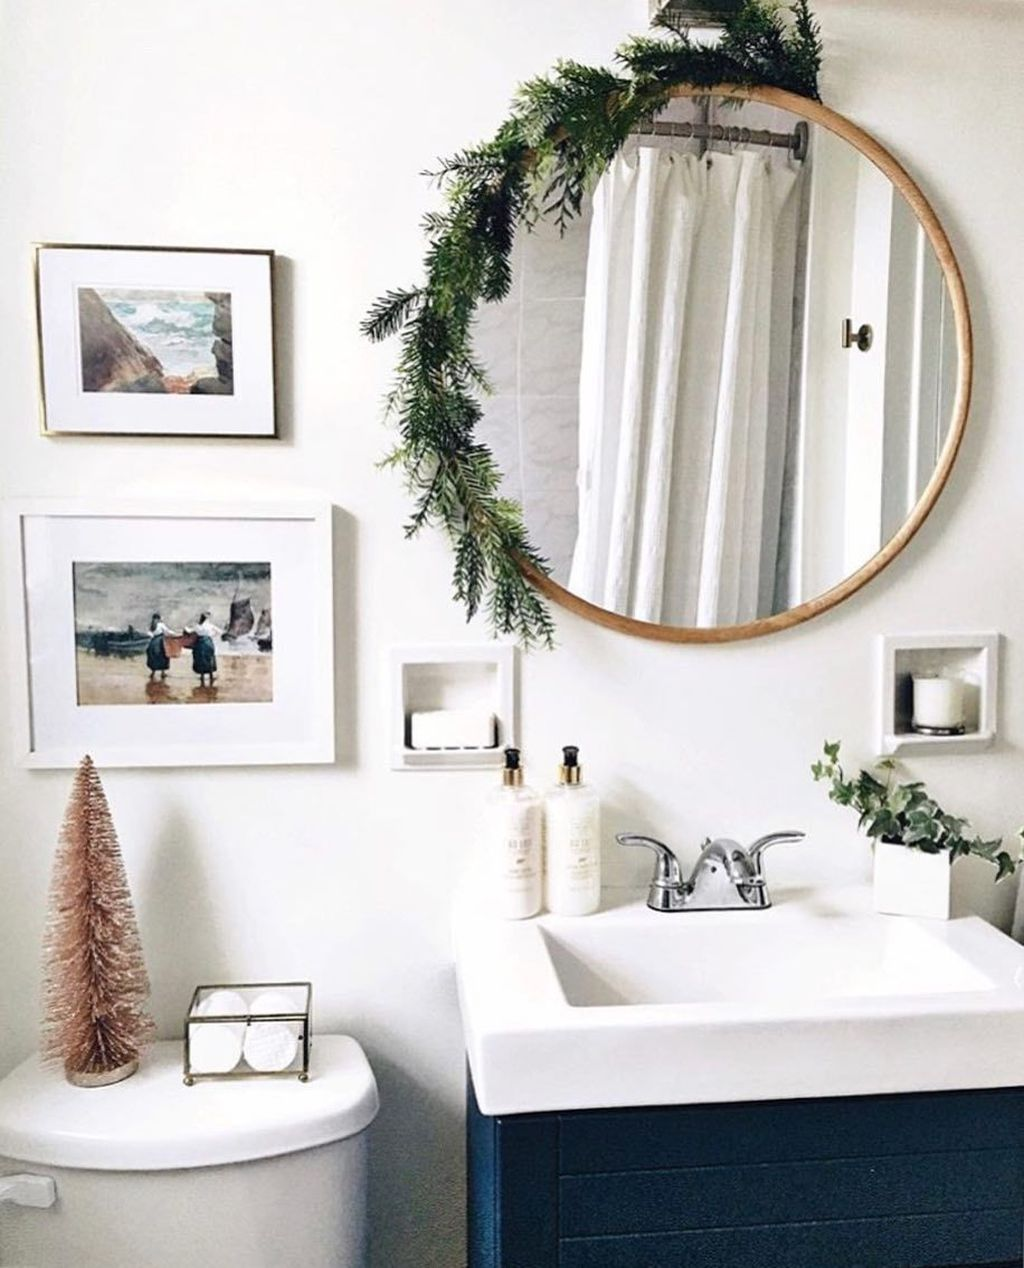 The Best Winter Bathroom Decor Ideas 28